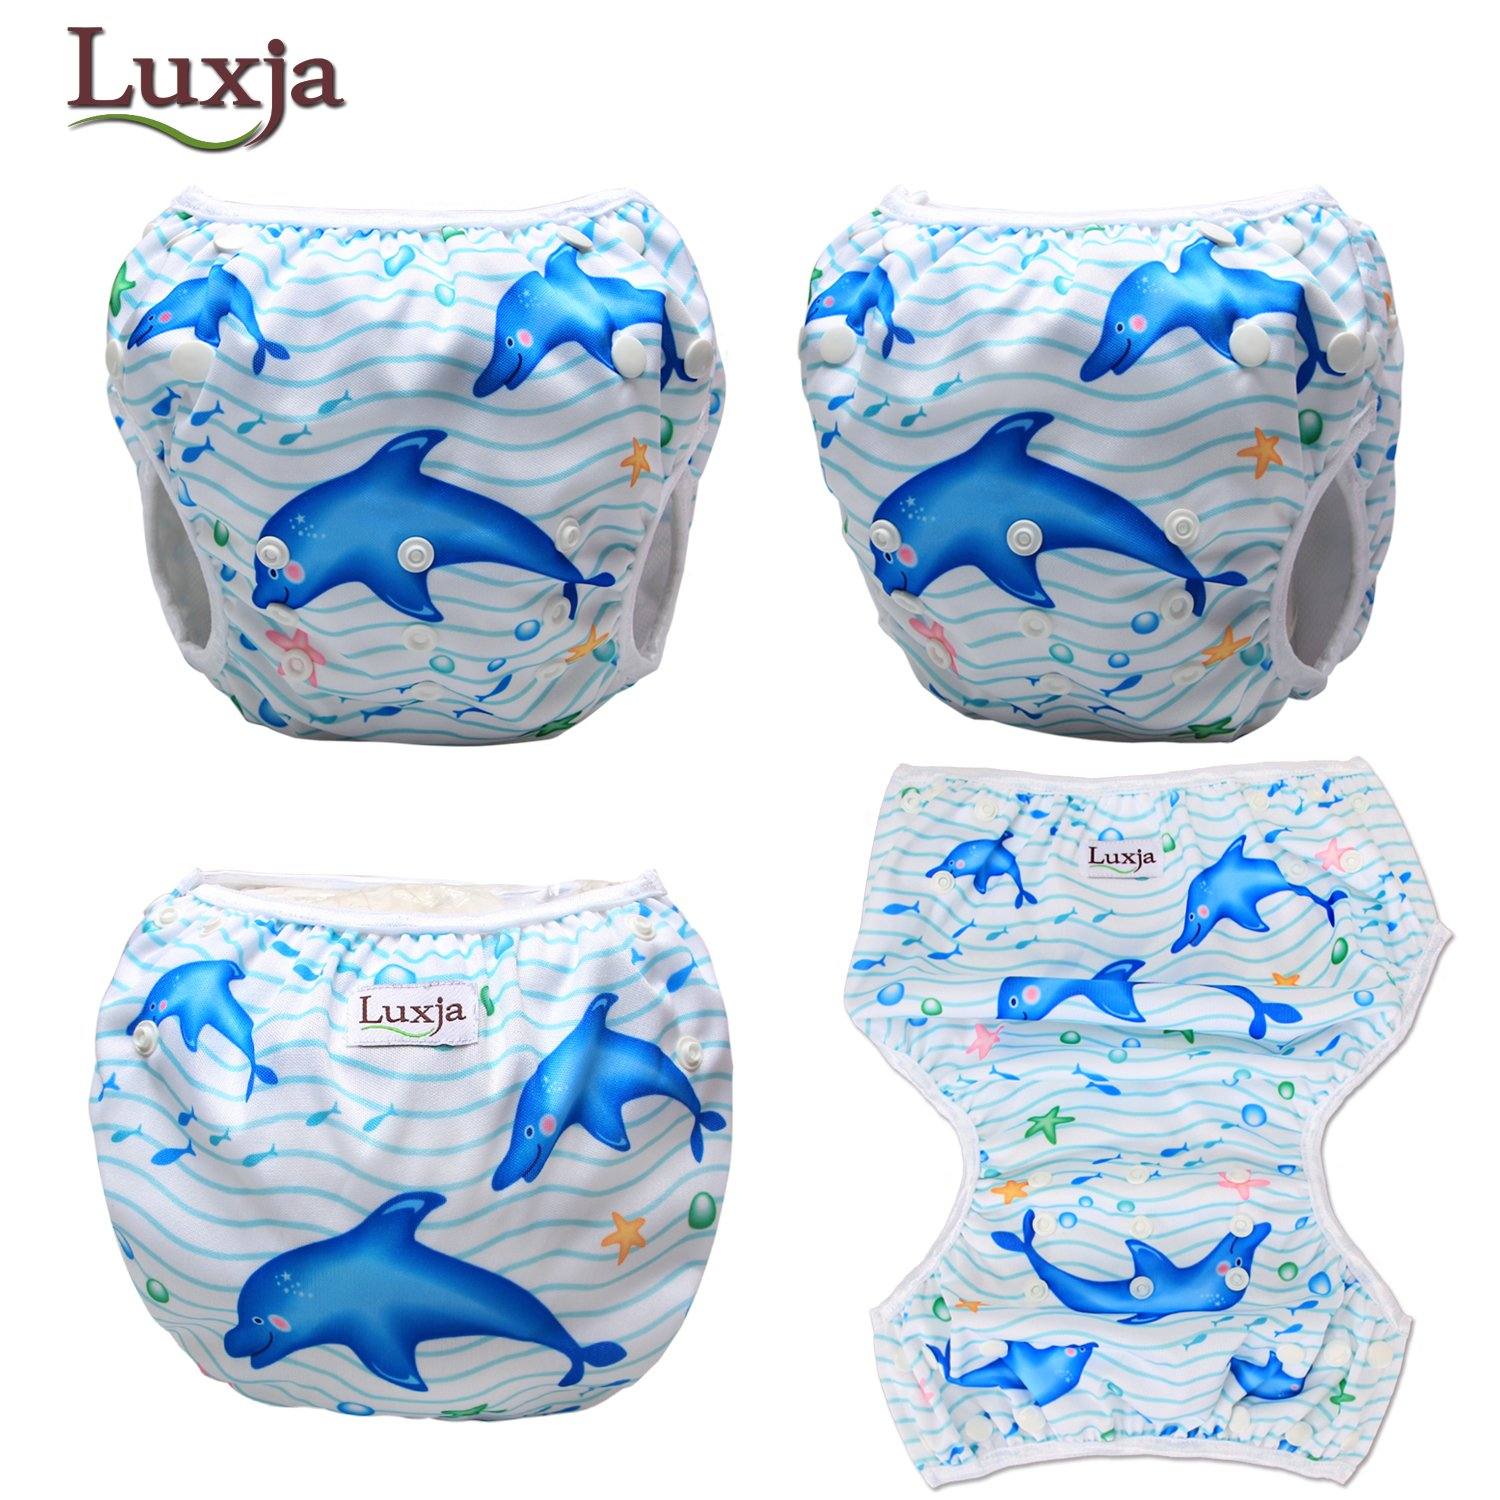 Shell + Blue Fish Pack of 2 Adjustable Swimming Diaper for Baby 0-3 Years LUXJA Reusable Swim Diaper